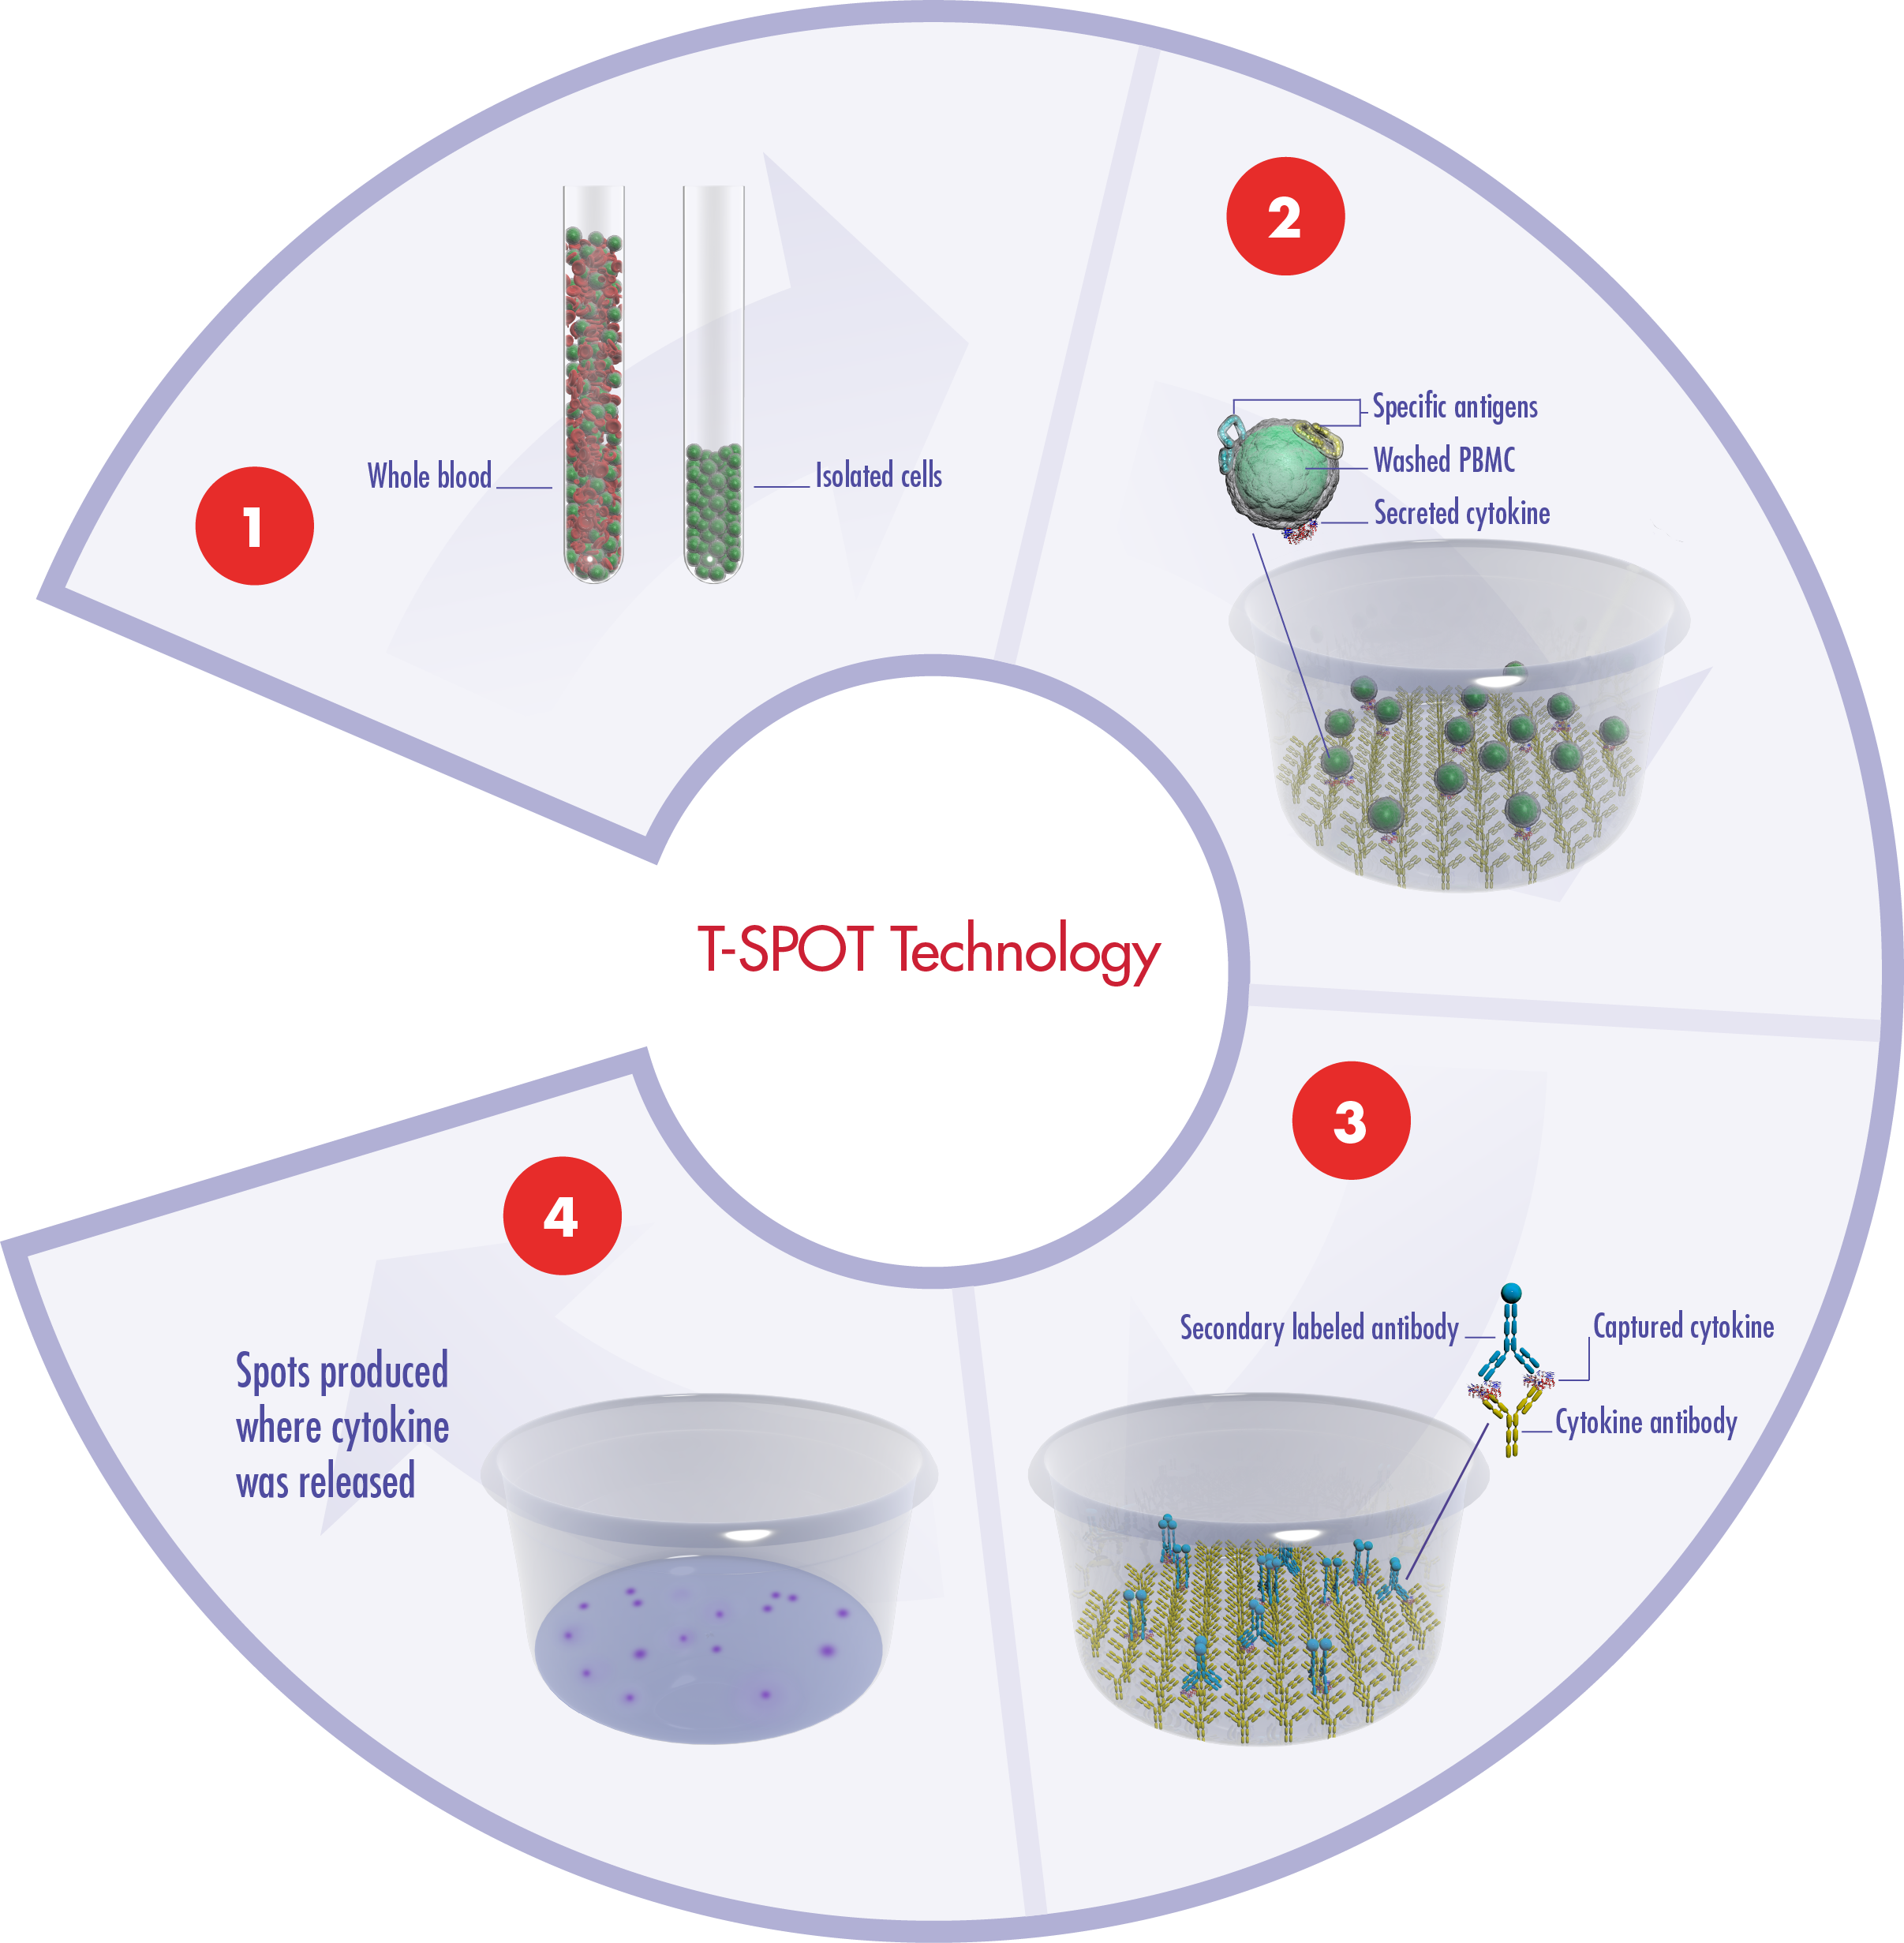 The principles of our T-SPOT assay system using blood as the body fluid in the example